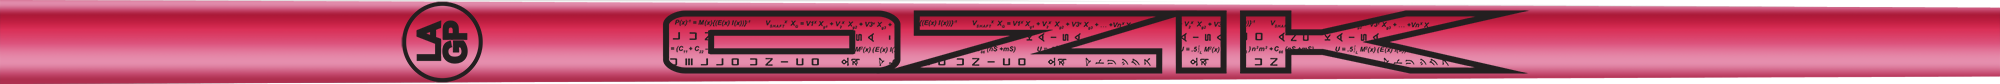 Ozik White Tie: Neon Pink Black Gloss - Wood 50 A